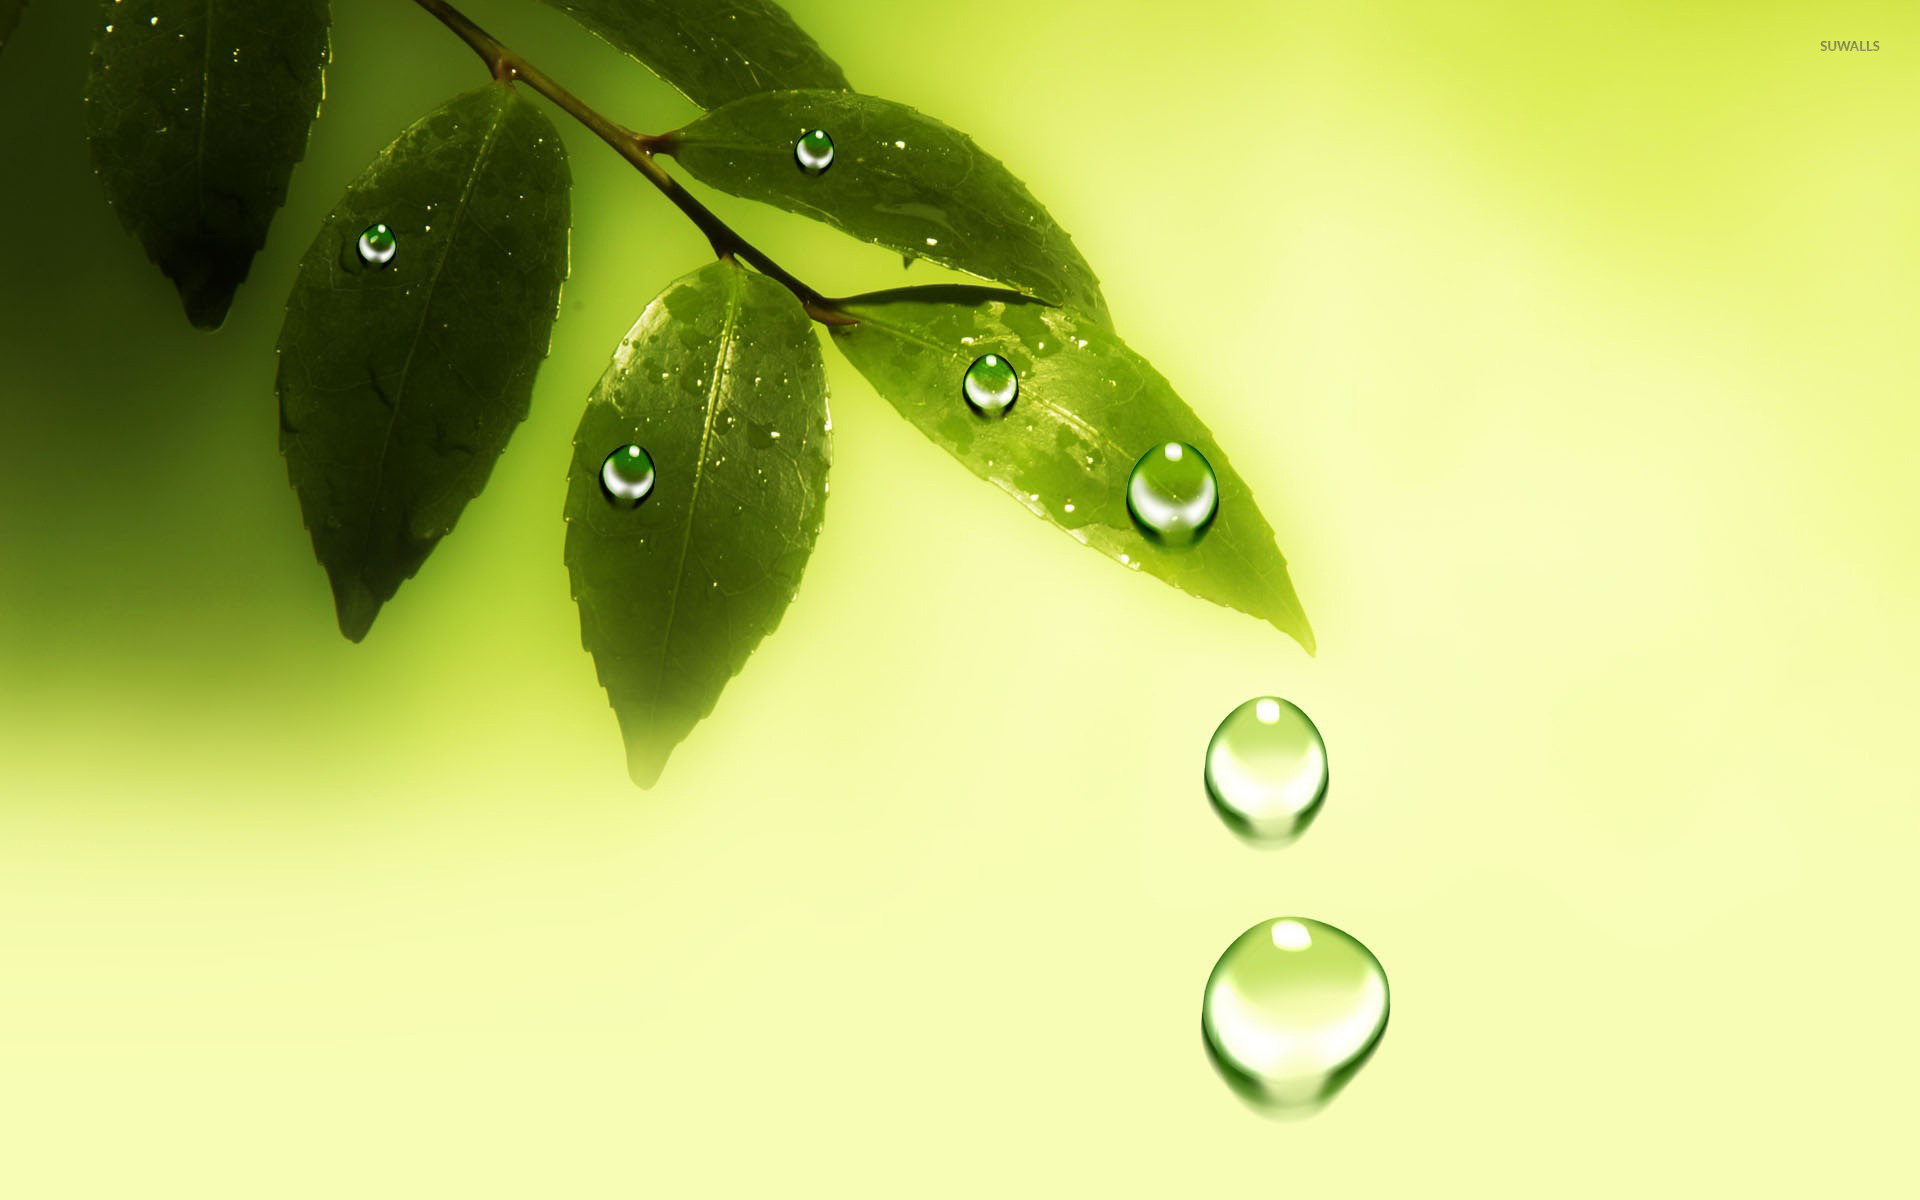 Water drops on the leaves wallpaper - Digital Art wallpapers - #20836